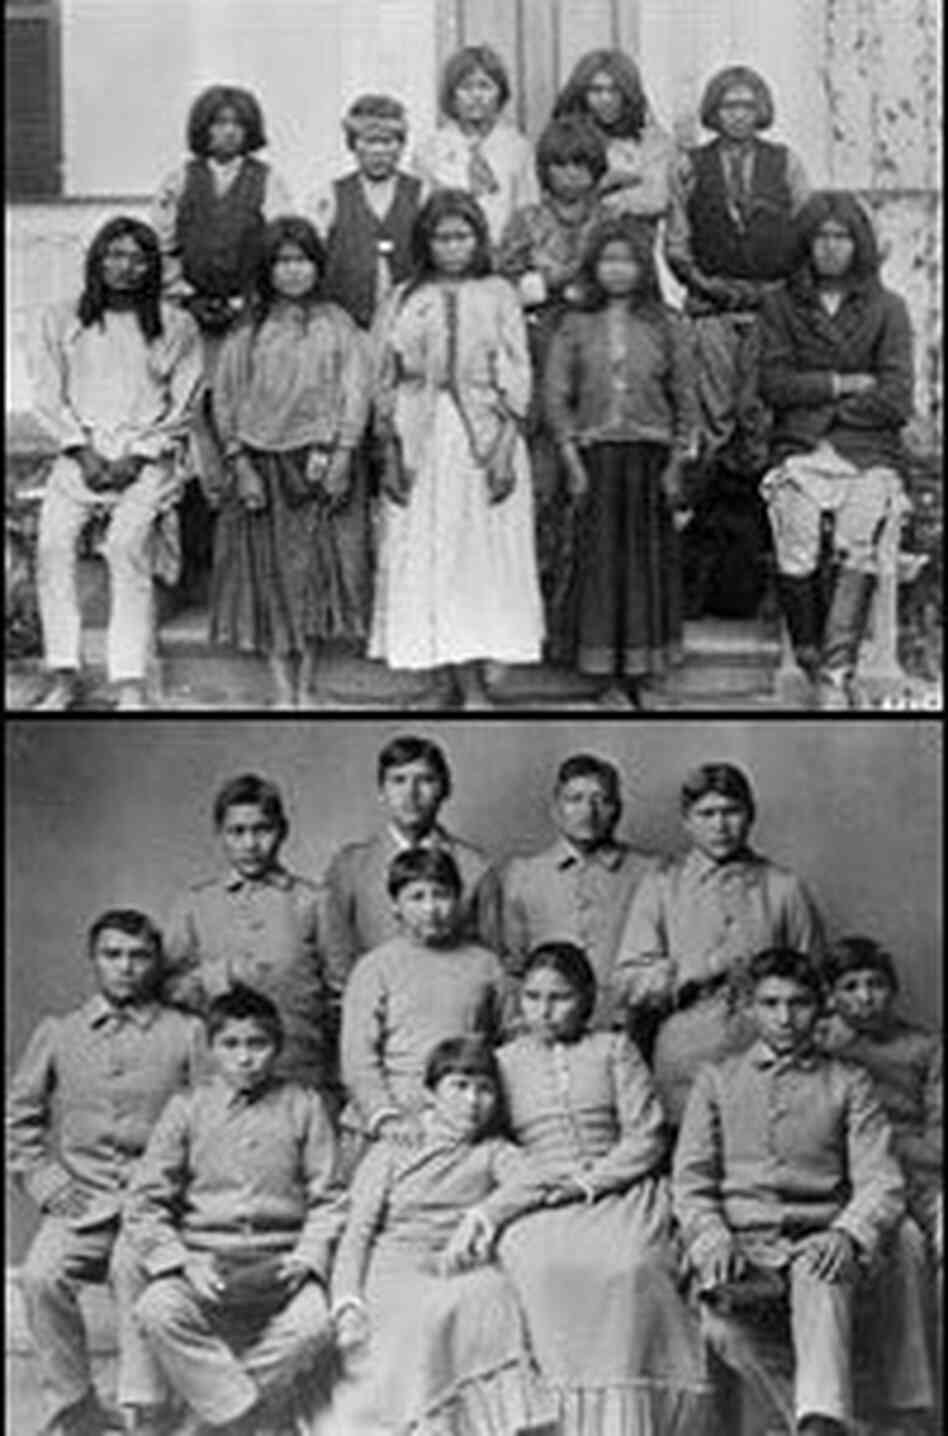 Top: A group of Chiricahua Apache students on their first day at Carlisle Indian School in Carlisle, Pa. Bottom: The same students four months later.